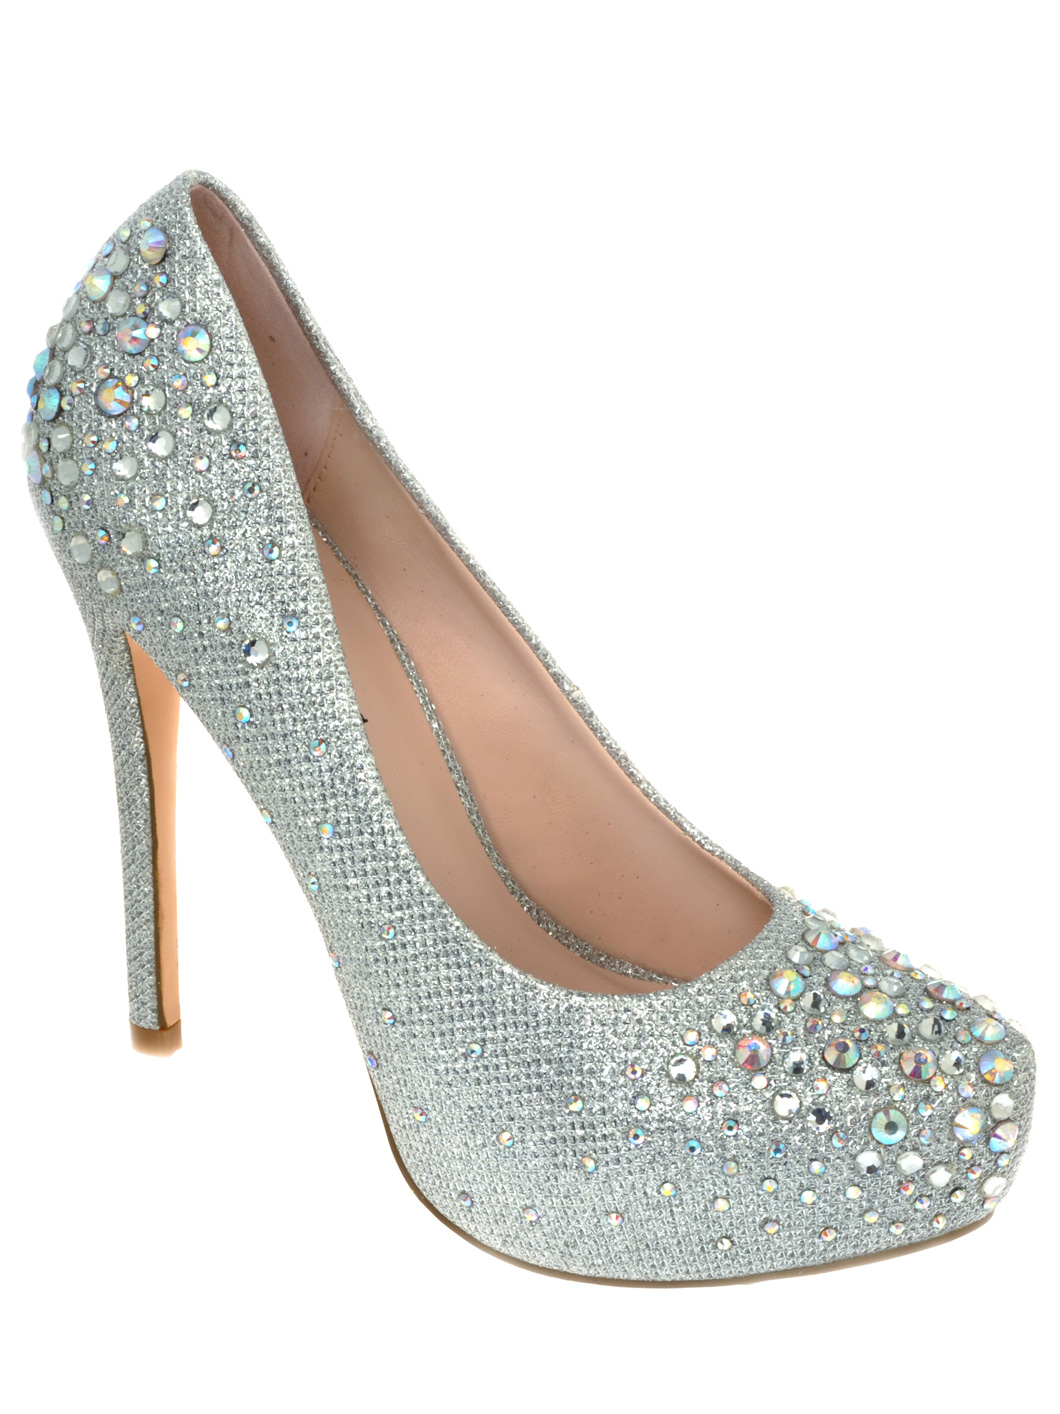 Silver Heels For Quinceanera